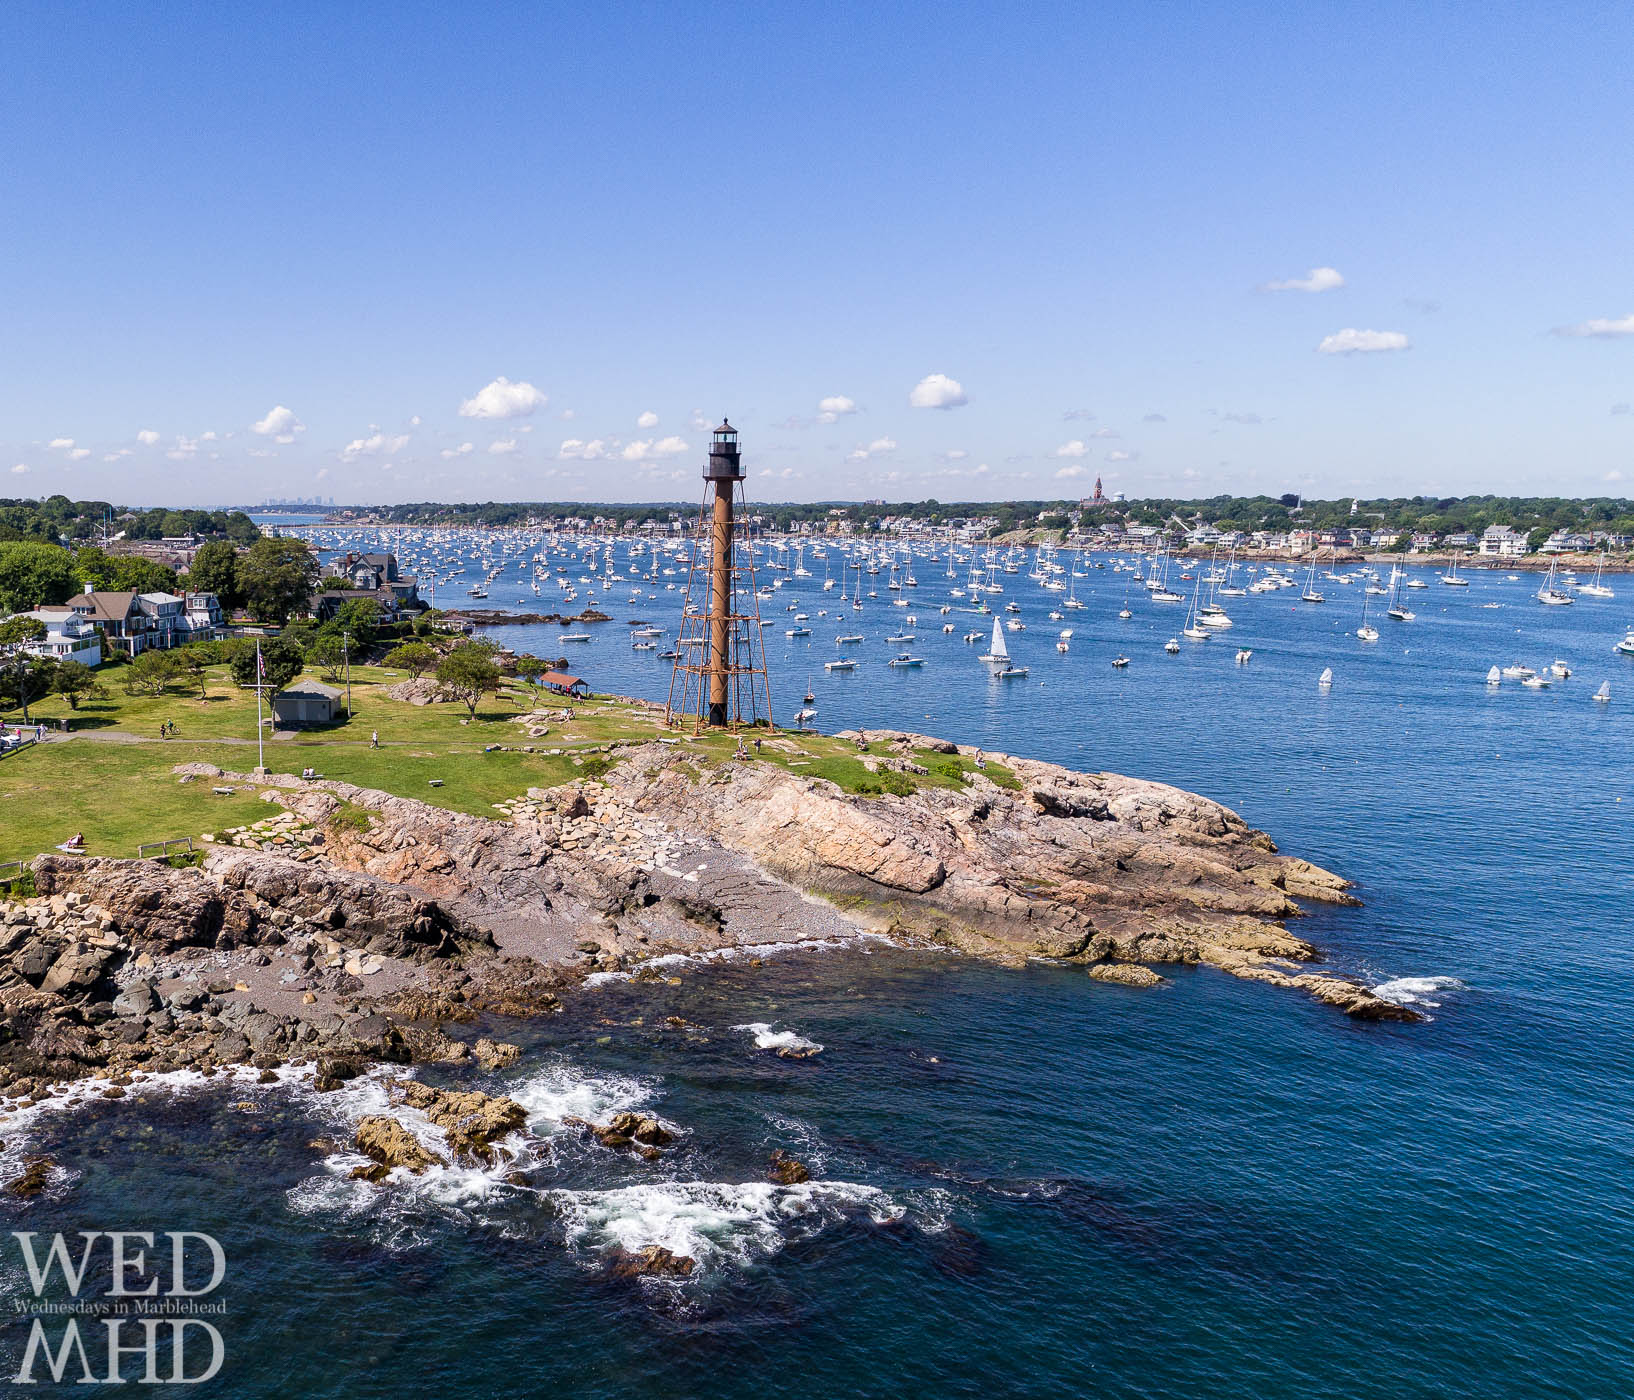 Marblehead Light stands tall on Chandler Hovey Park with the harbor full of activity behind it and Abbot Hall visible in the distance